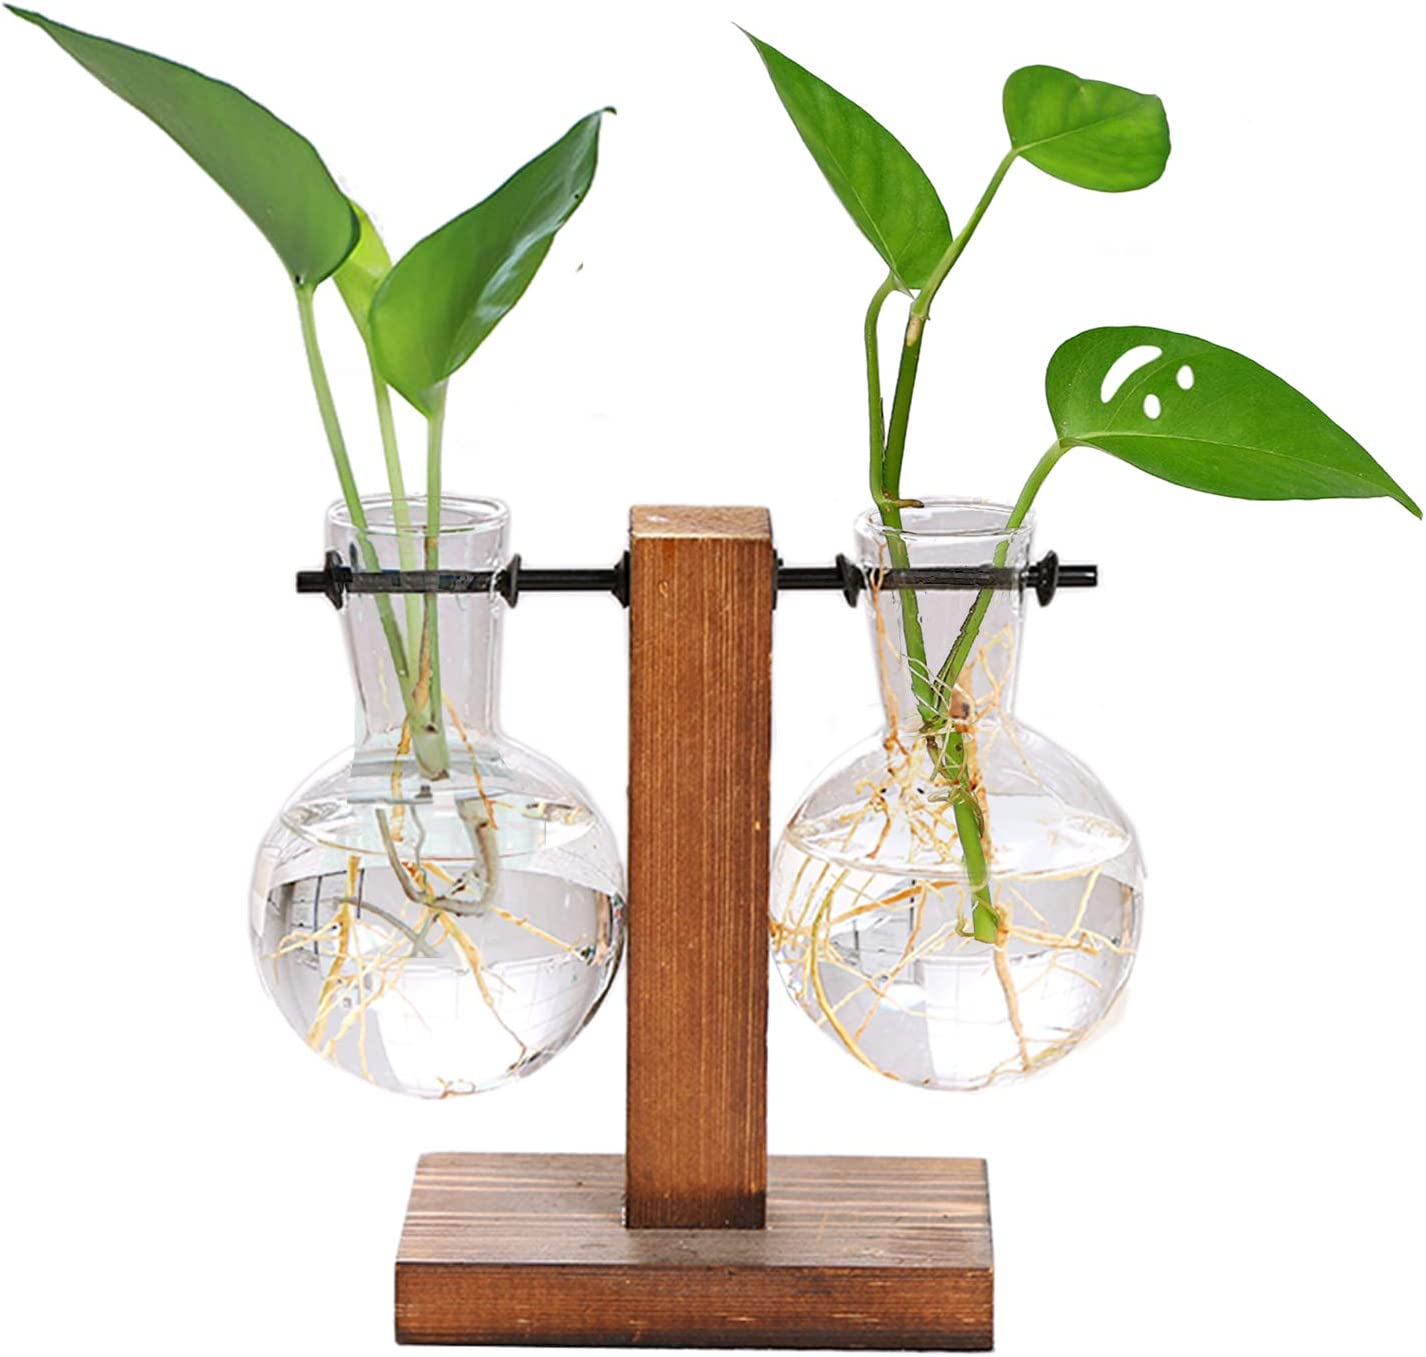 HUABEI Plant Terrarium with Wooden Stand, Air Planter Bulb Glass Vase Metal Swivel Holder Retro Tabletop for Hydroponics Home Garden Office Decoration - 2&1 Bulb Vase